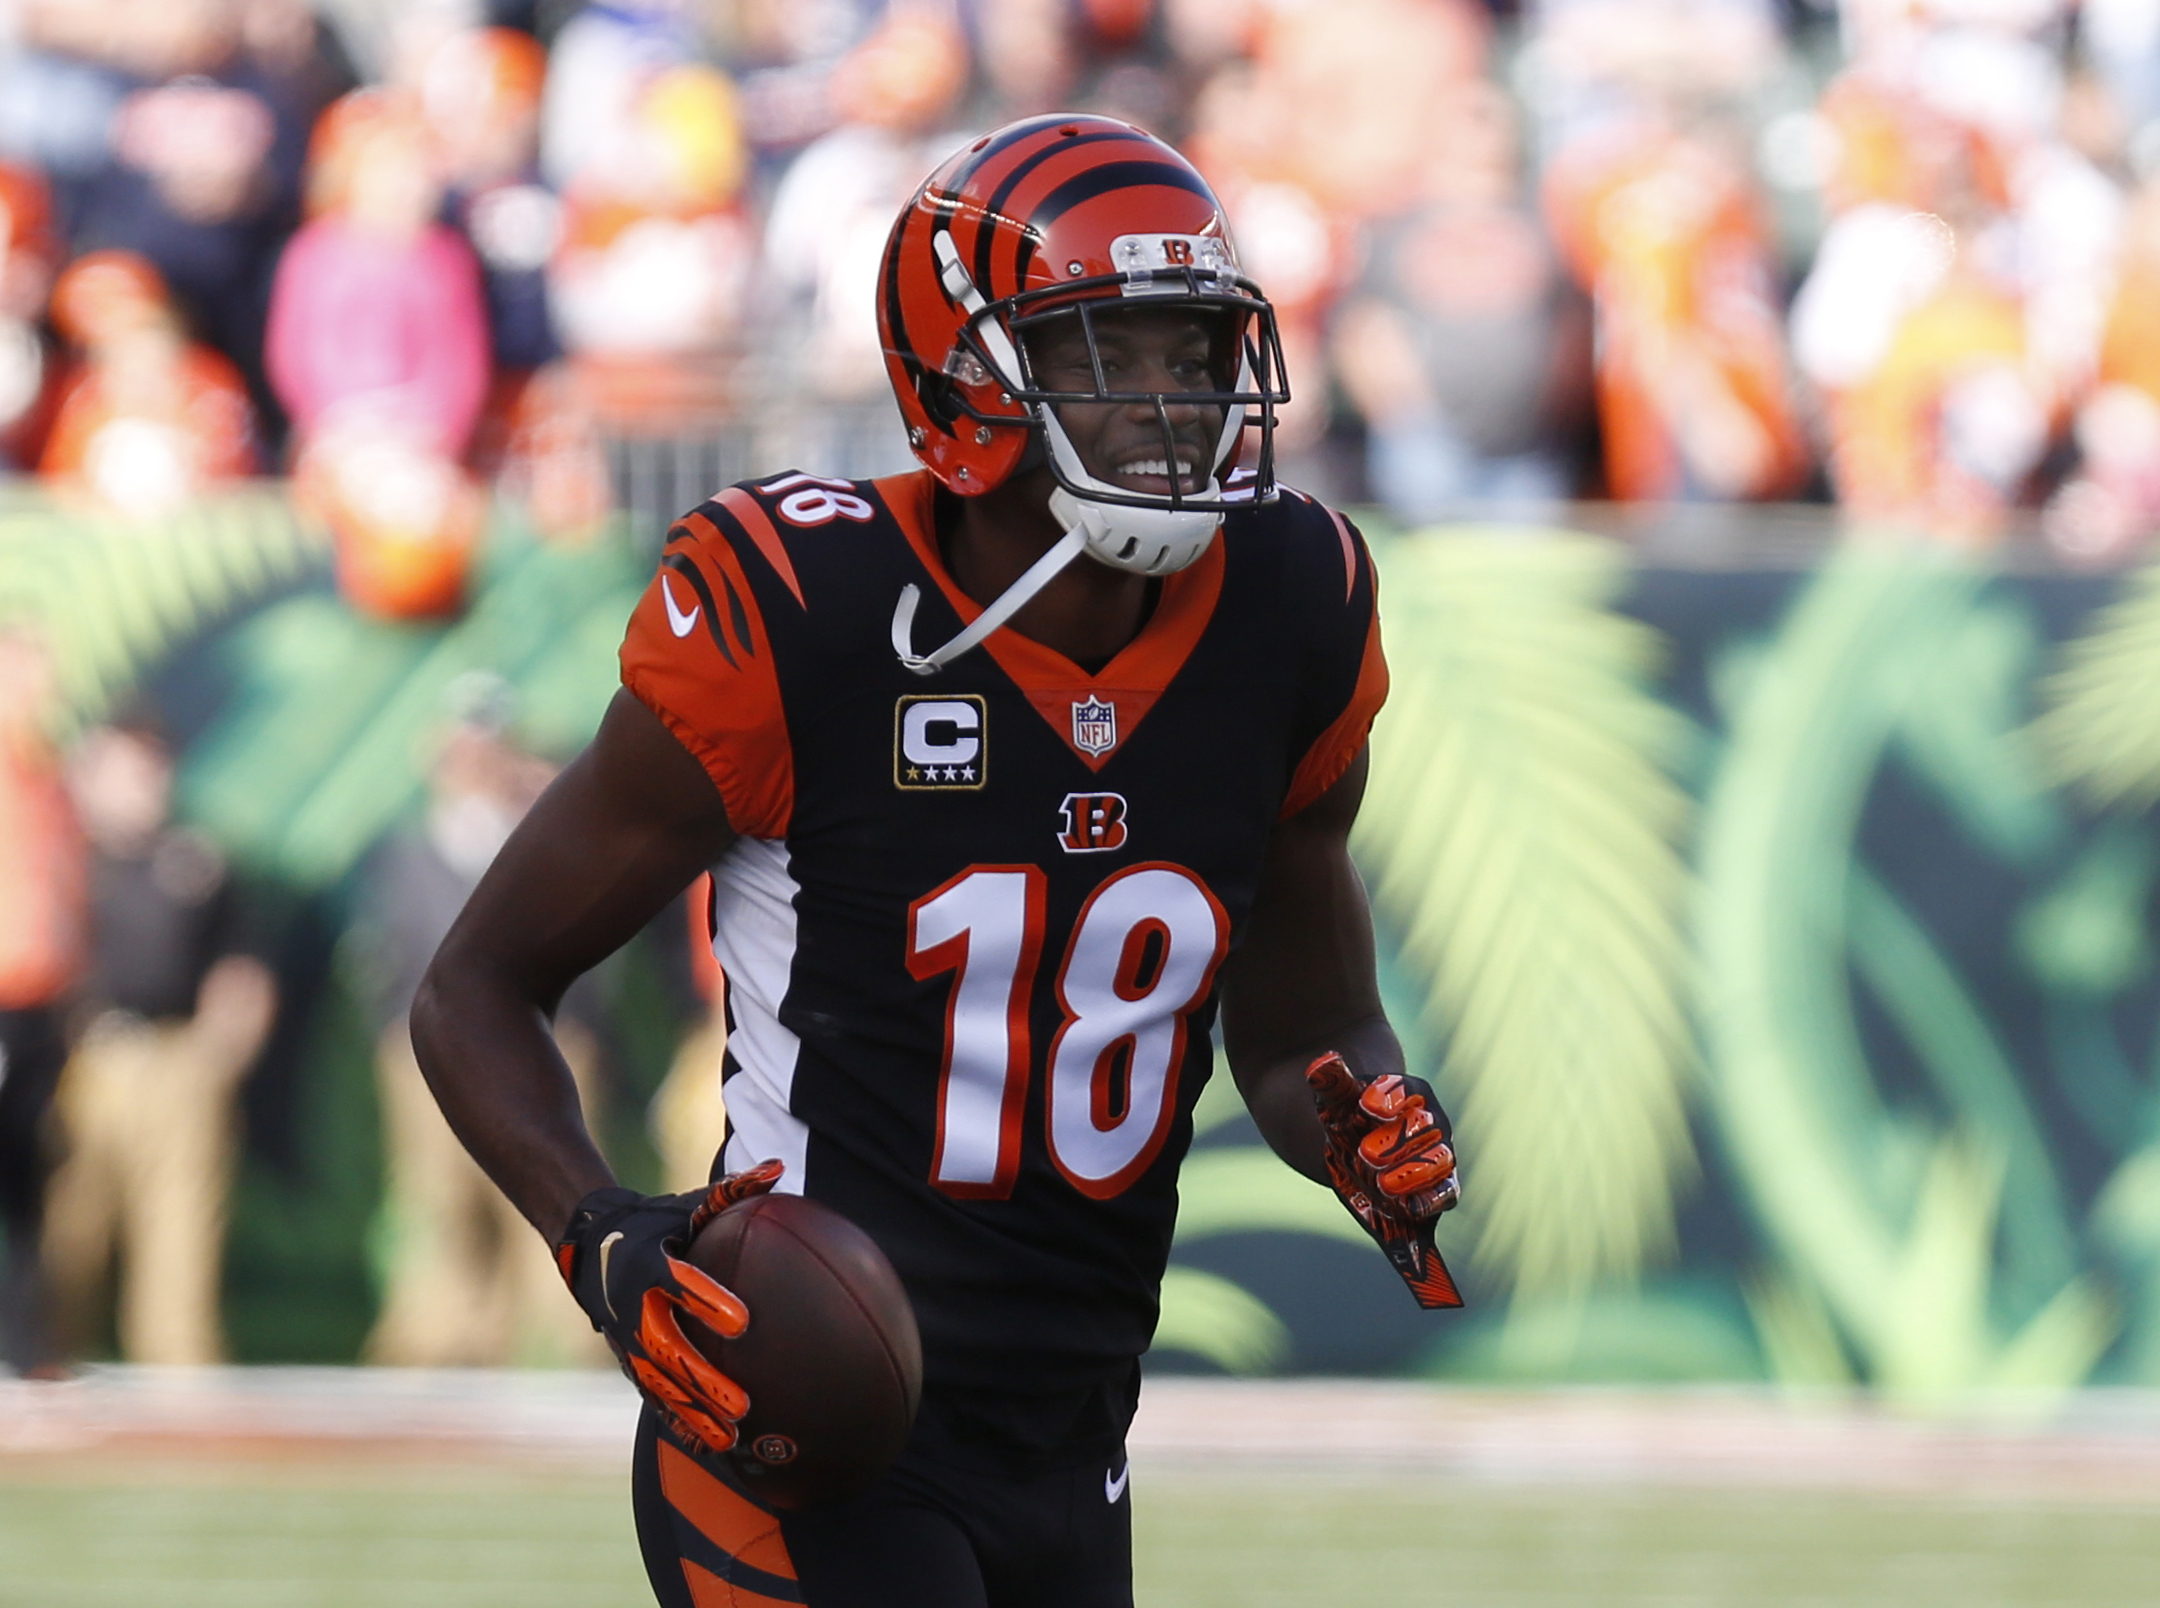 Cincinnati Bengals wide receiver A.J. Green warms up prior to a game against the Denver Broncos at Paul Brown Stadium.